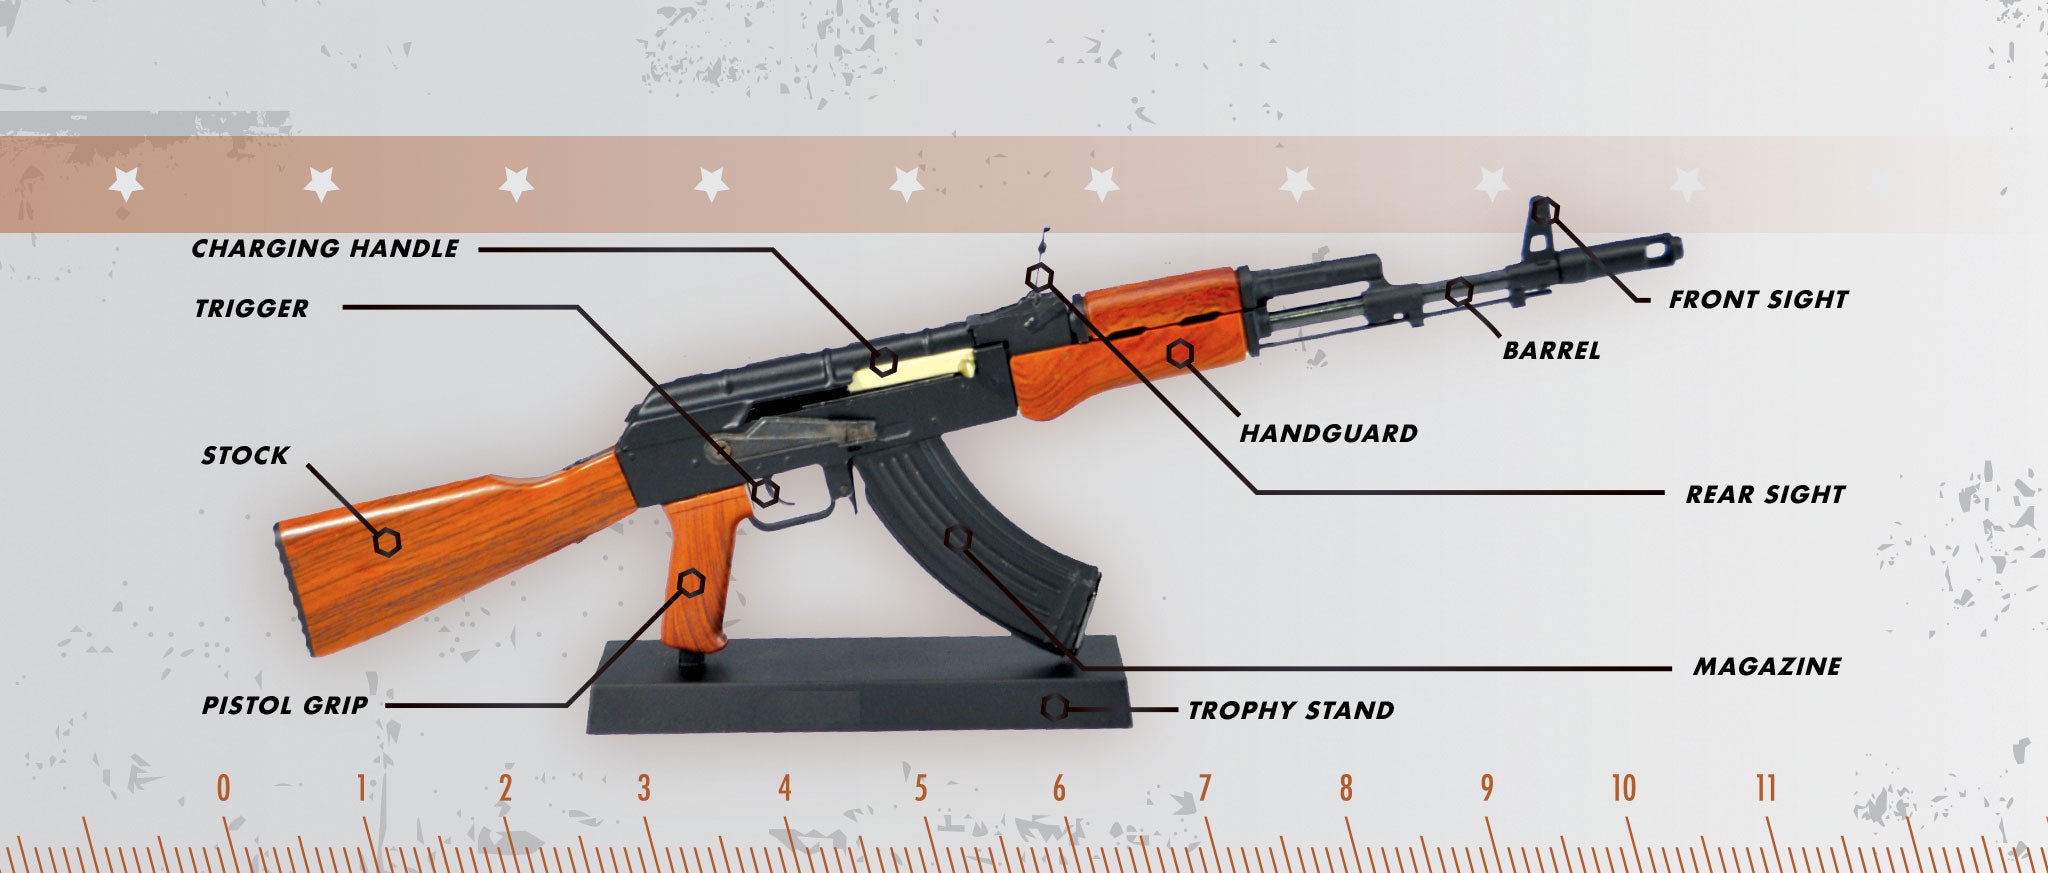 Black AK47 rifle facts